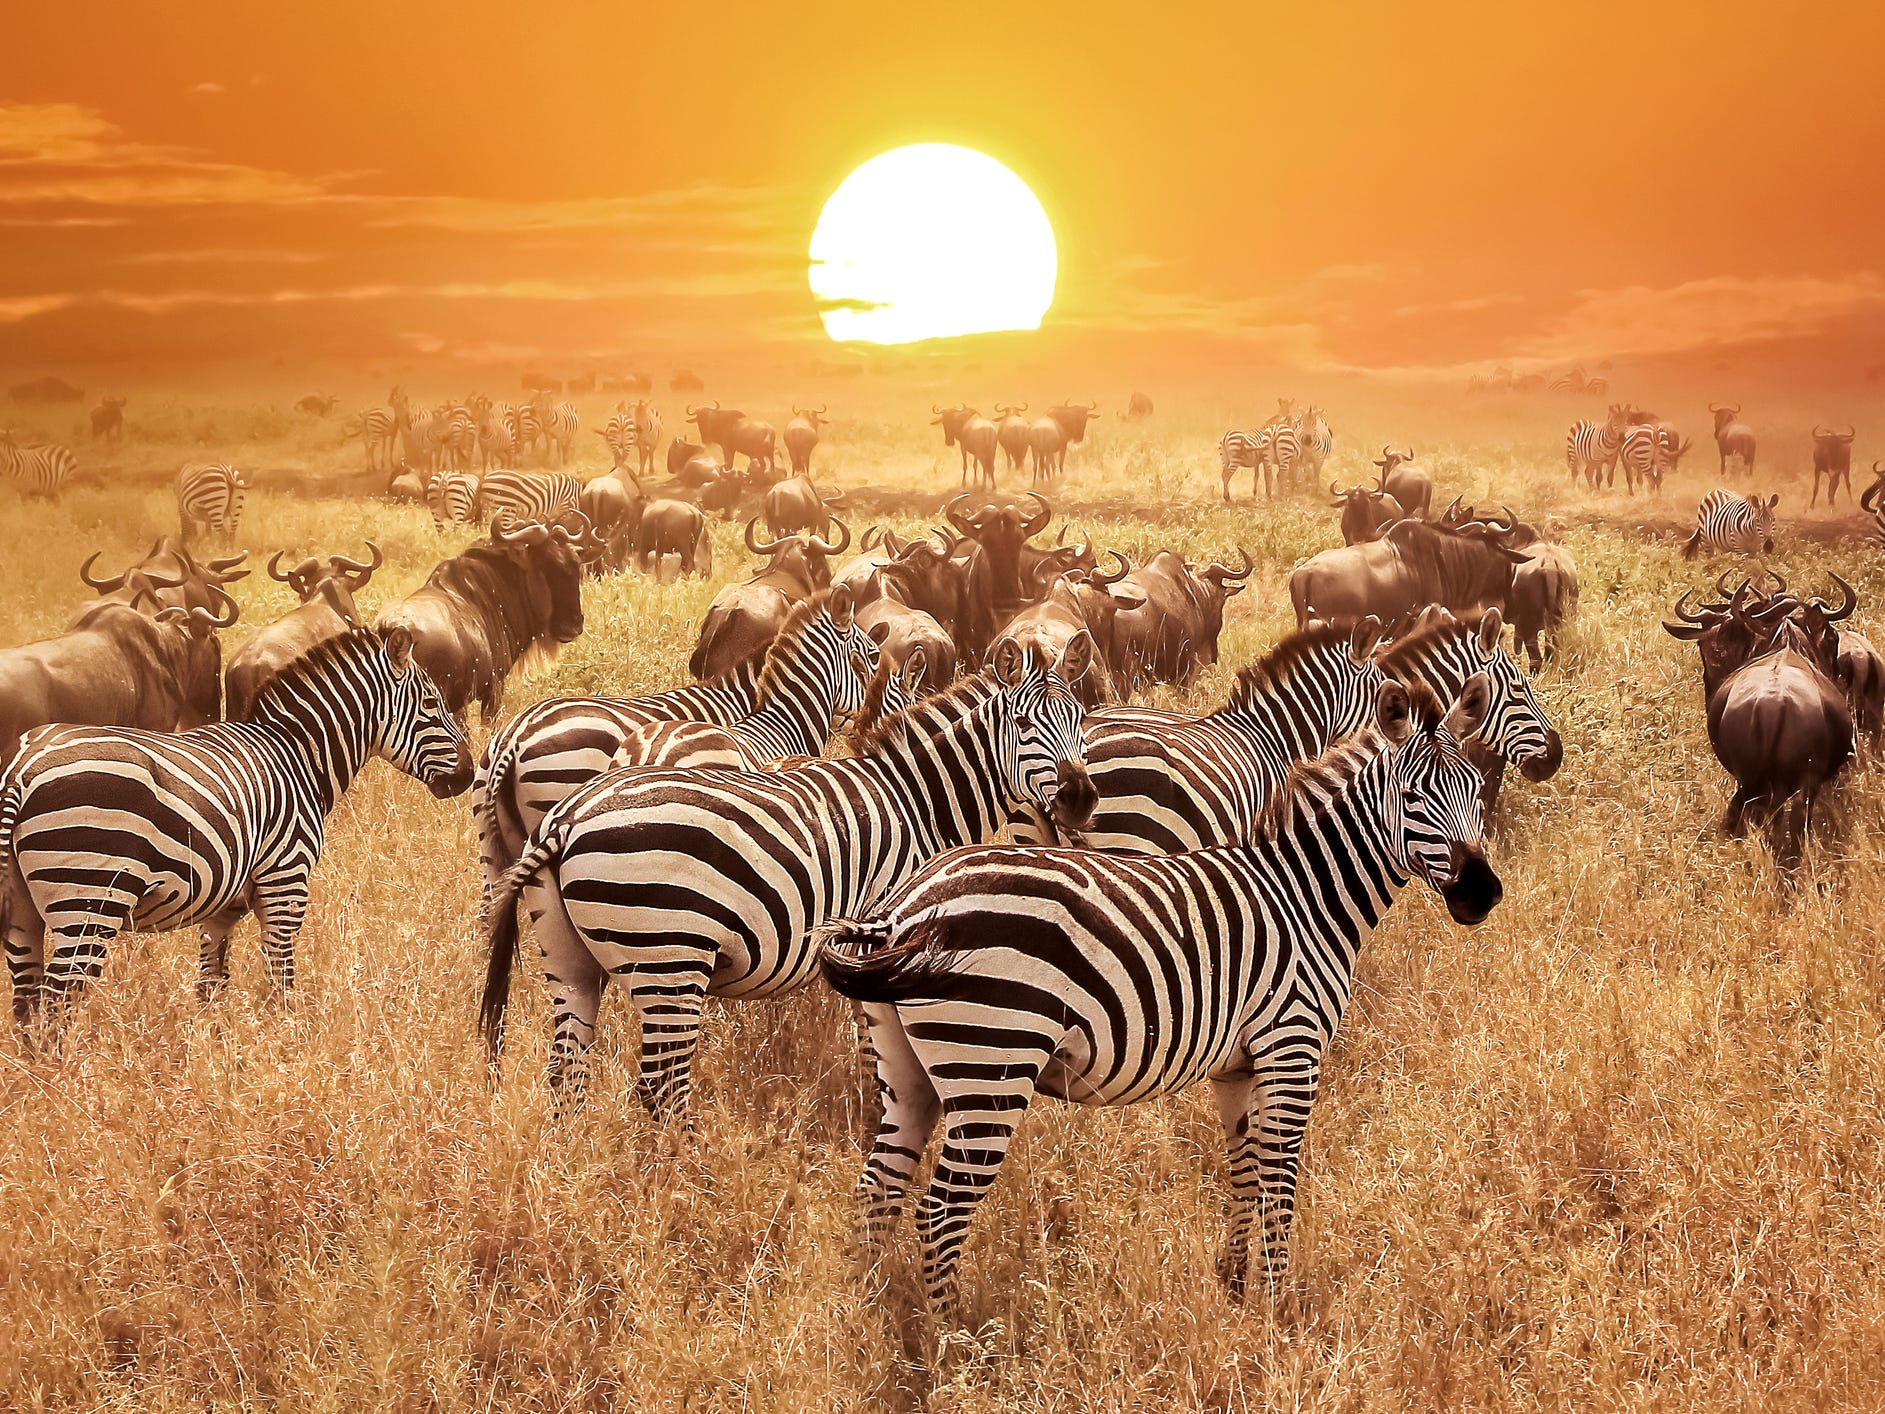 Tanzania: No wildlife lover should pass up a chance to see Africa's legendary Big Five: lions, rhinos, elephants, leopards and Cape buffalo. In Tanzania you'll find them all plus many more, including hippos, giraffes and zebras. The country is most famous for the Great Migration, when millions of wildebeest move en masse from the Serengeti in Tanzania to the Masai Mara in neighboring Kenya; June and July are the best months for viewing the migration in Tanzania.